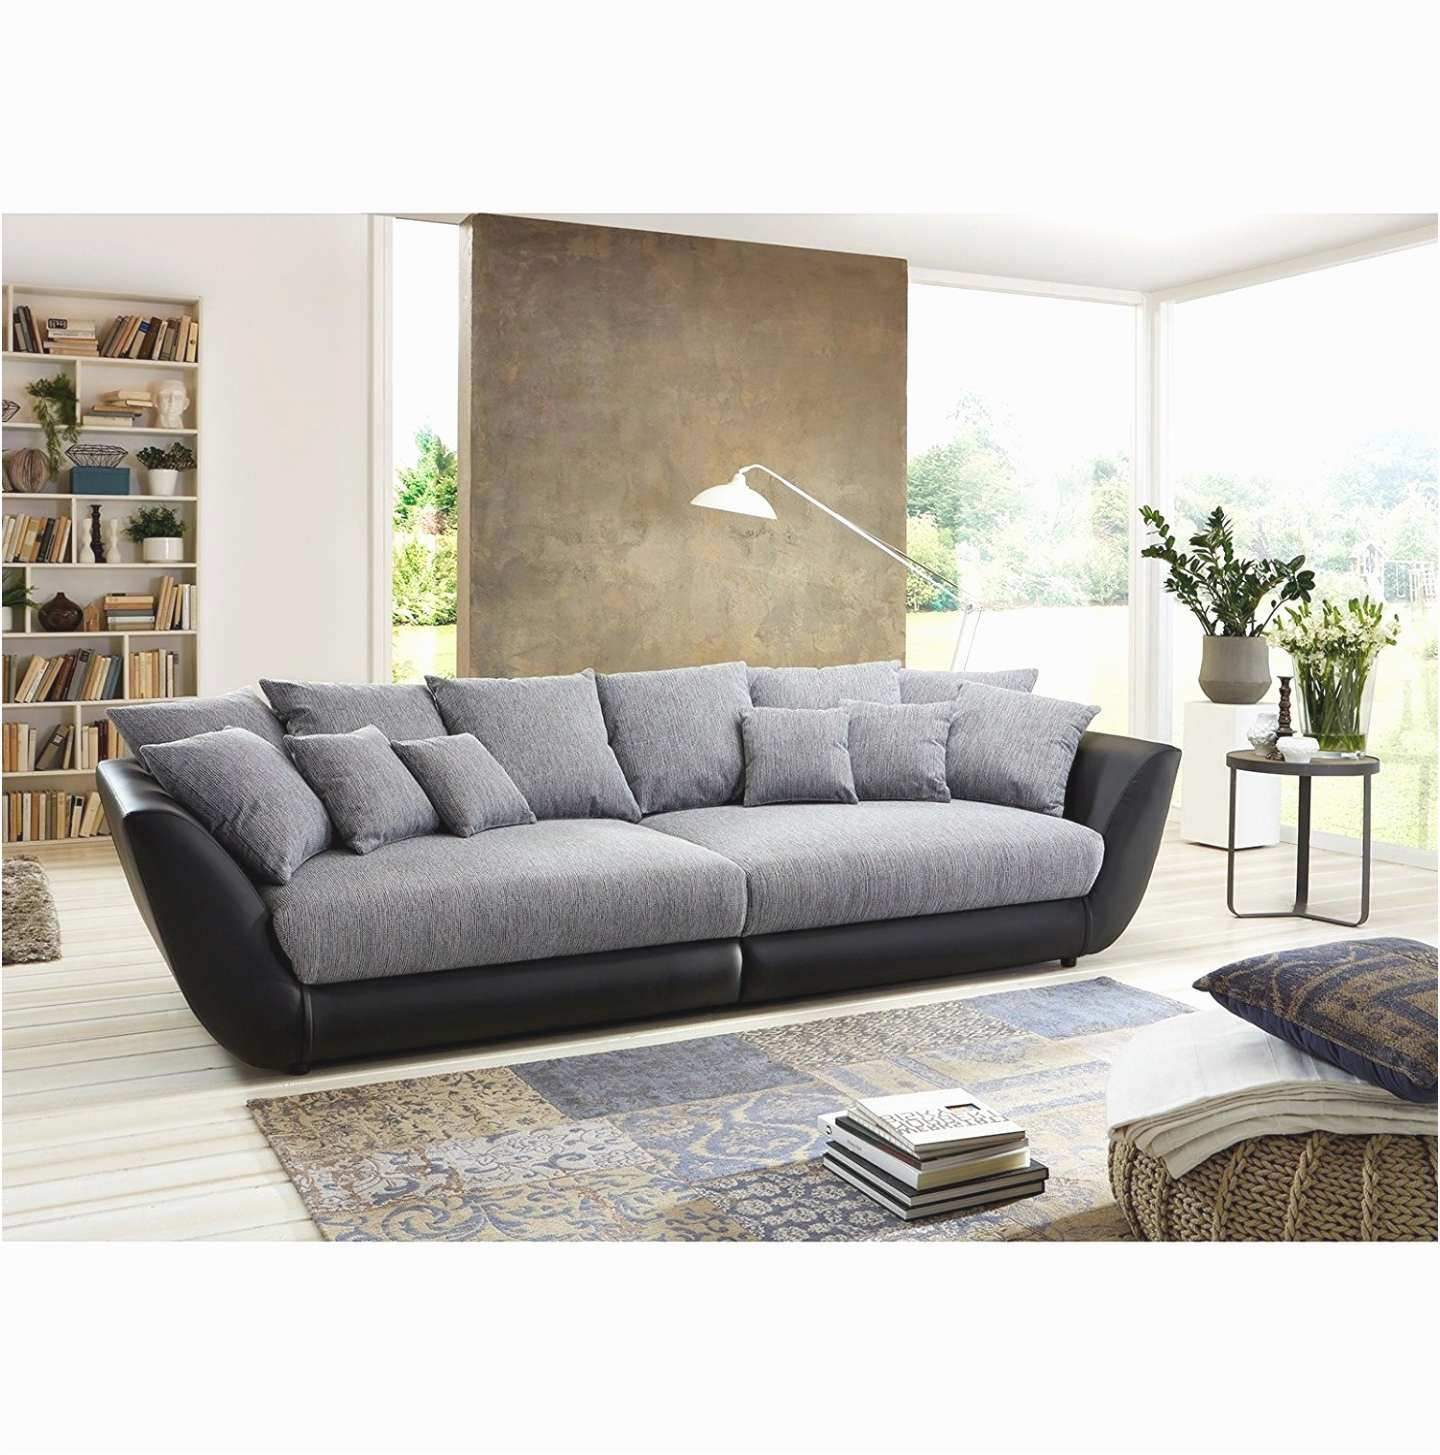 sofa l form frisch u sofa xxl schon big sofa l form luxus u couch u couch 0d s of sofa l form